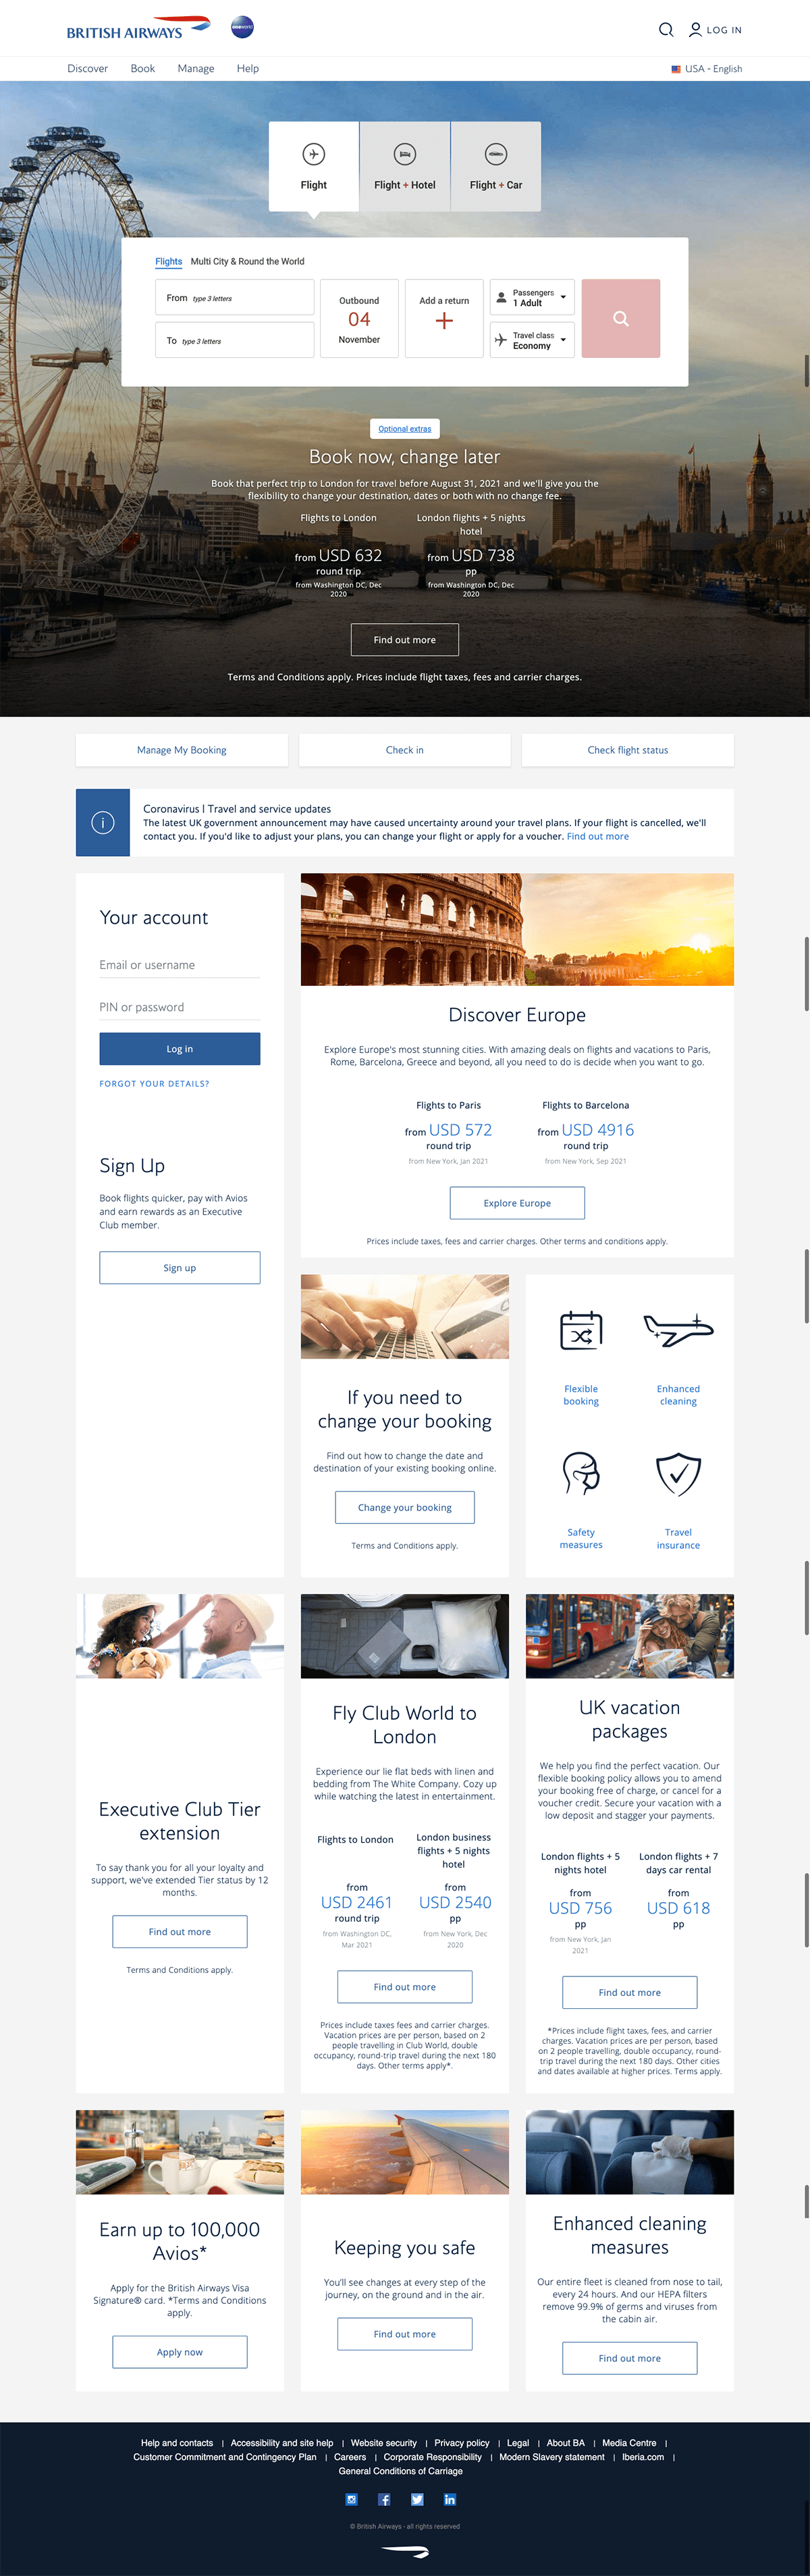 British Airways Travel Landing Page